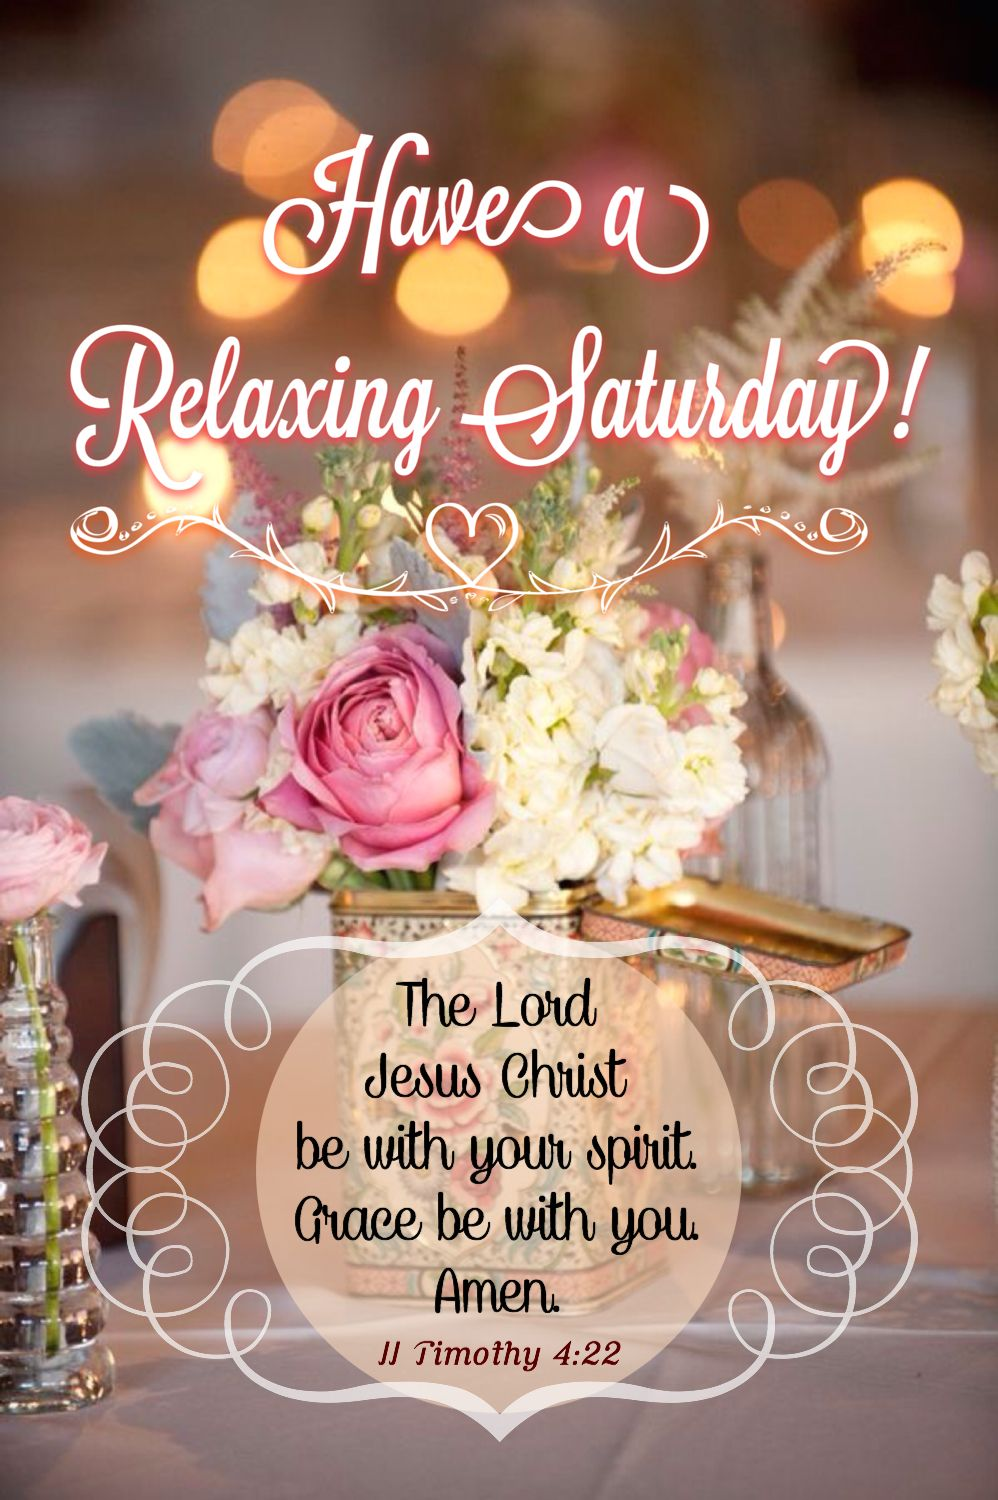 Bless You Saturday Blessings Pinterest Blessings Lord And